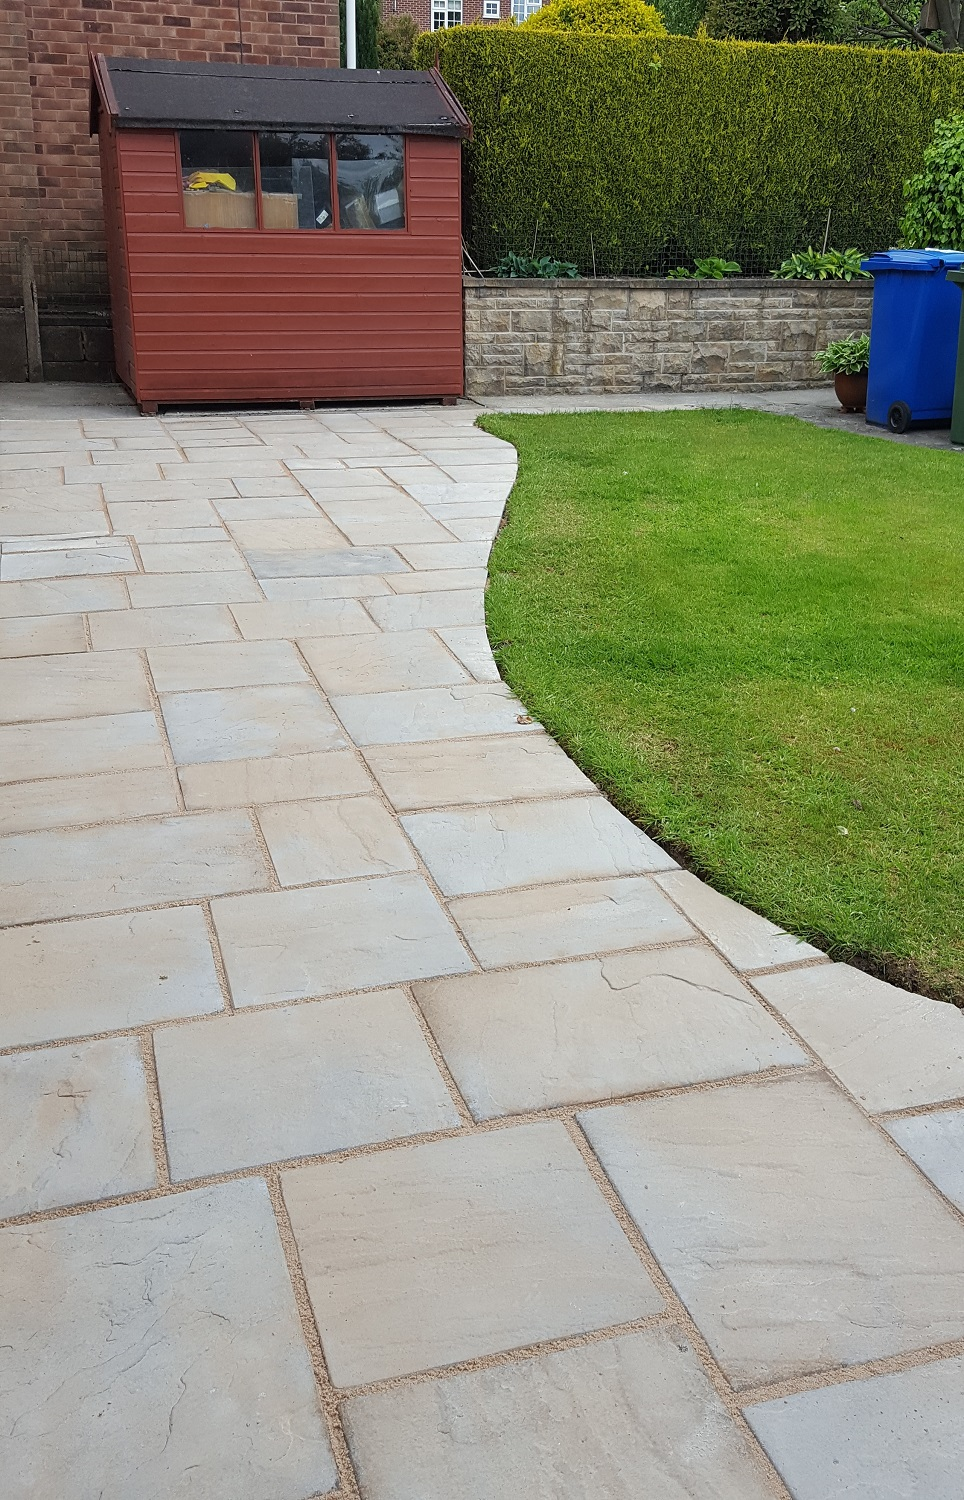 H2 Marshalls Heritage Paving Patio at Ashgate, Chesterfield